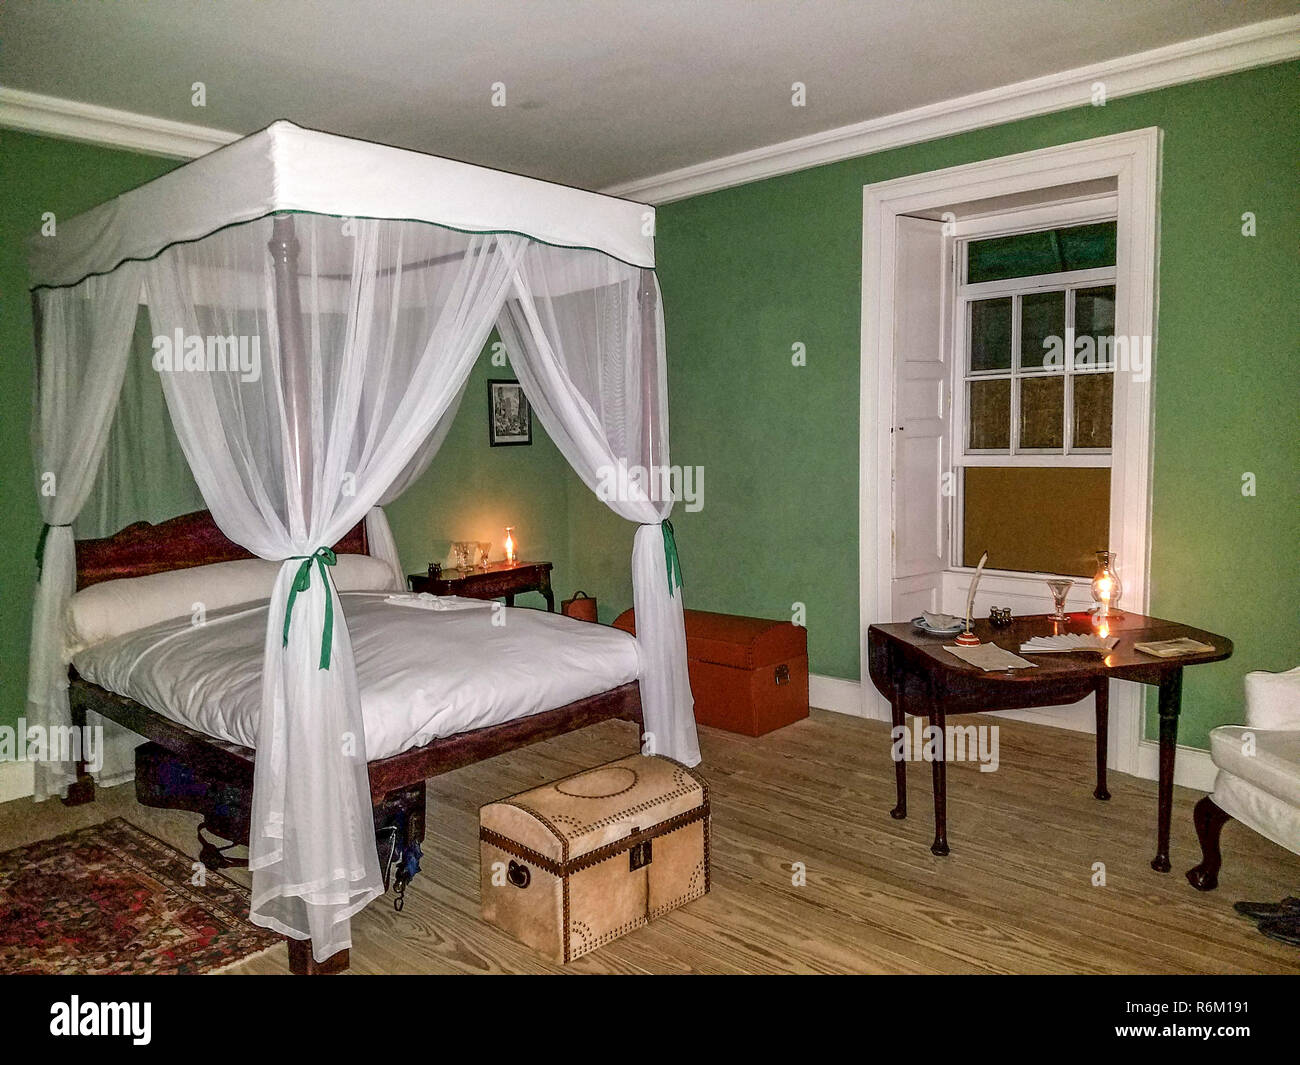 Restored bedroom occupied by George Washington's ailing brother Lawrence, at the house they occupied in Bridgetown, Barbados. - Stock Image